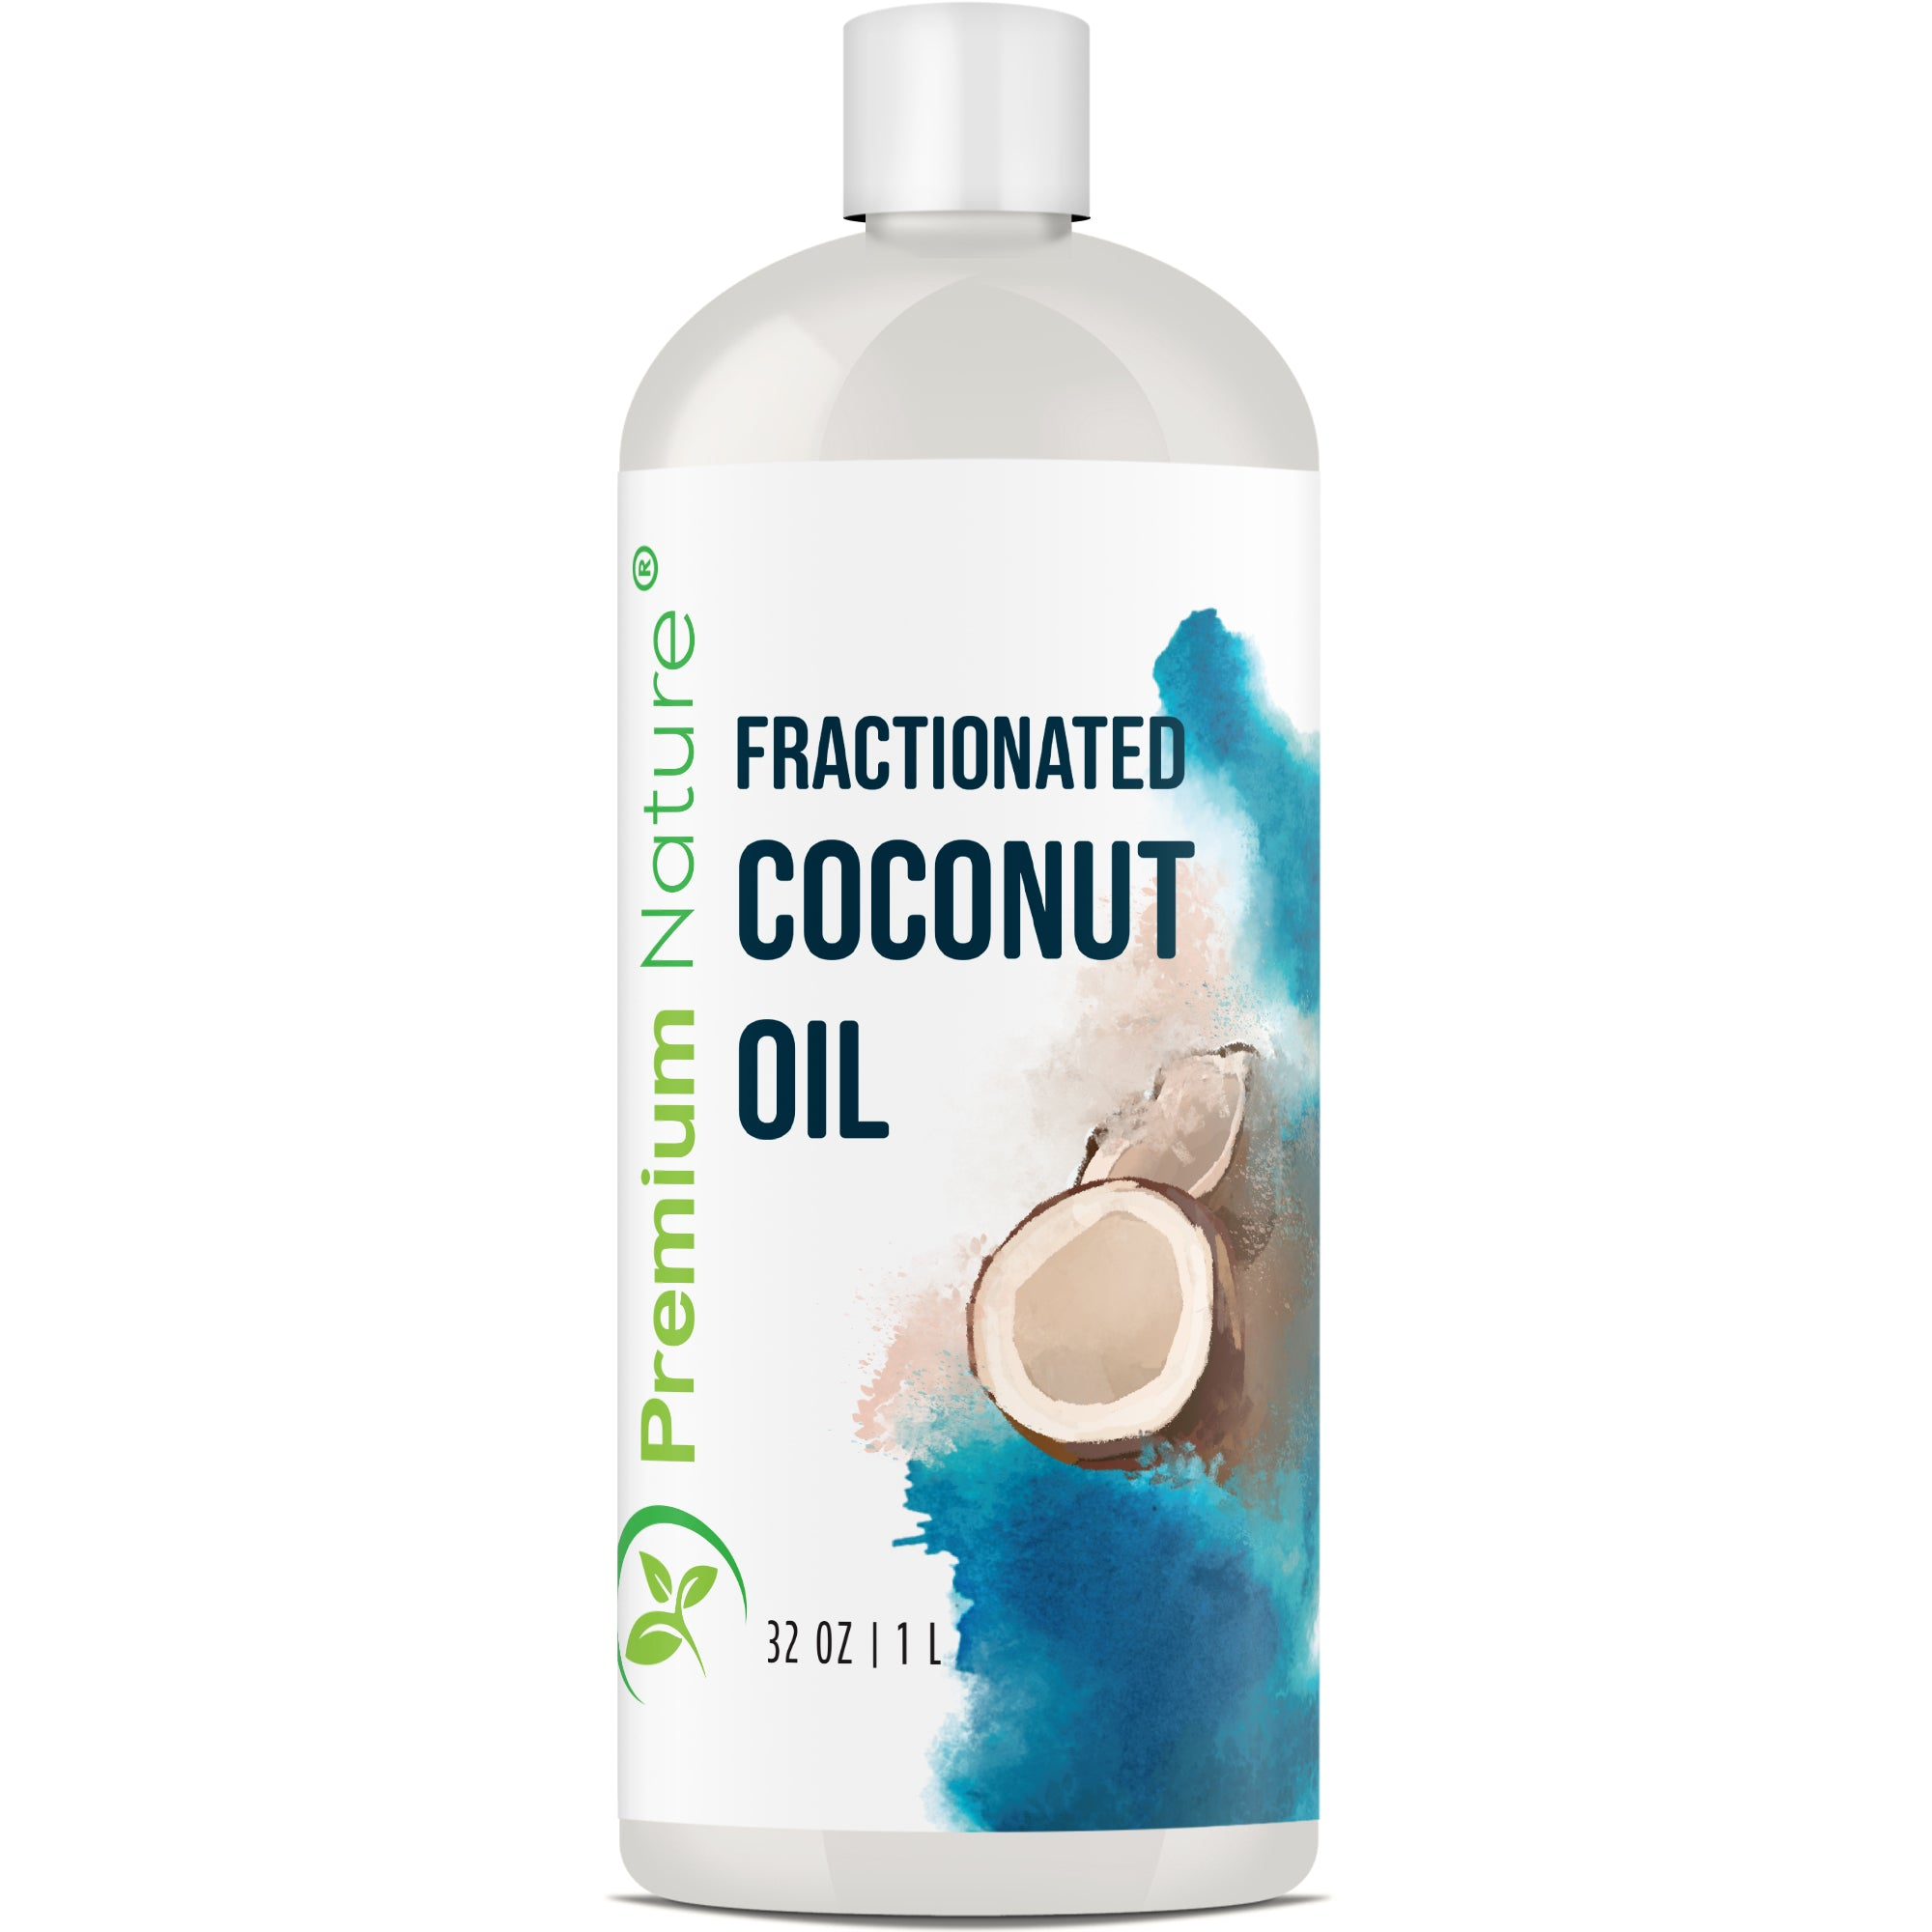 Fractionated Coconut Oil 32 oz Massage Oil - Cold Pressed Pure MCT Oil for Essential Oils Mixing Dry Skin Moisturizer Natural Carrier Baby Oil for Face Hair & Body Therapeutic Aromatherapy Raw